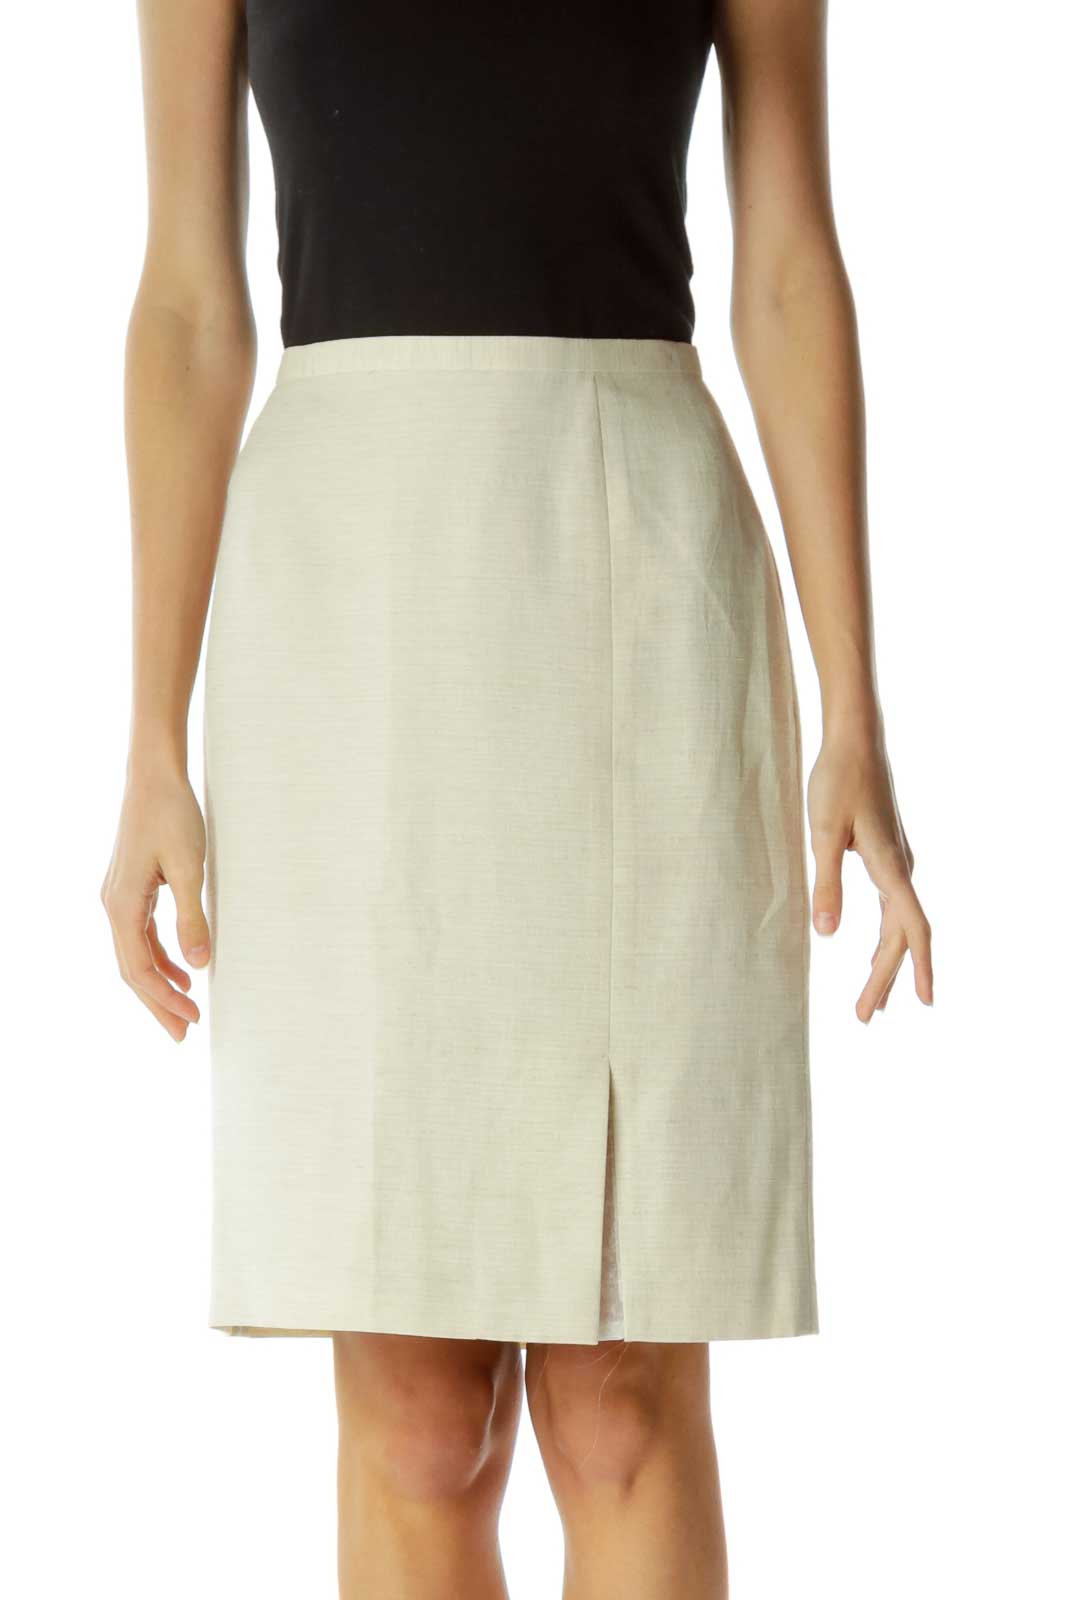 Cream A-Line Skirt with Sheer Slit Front